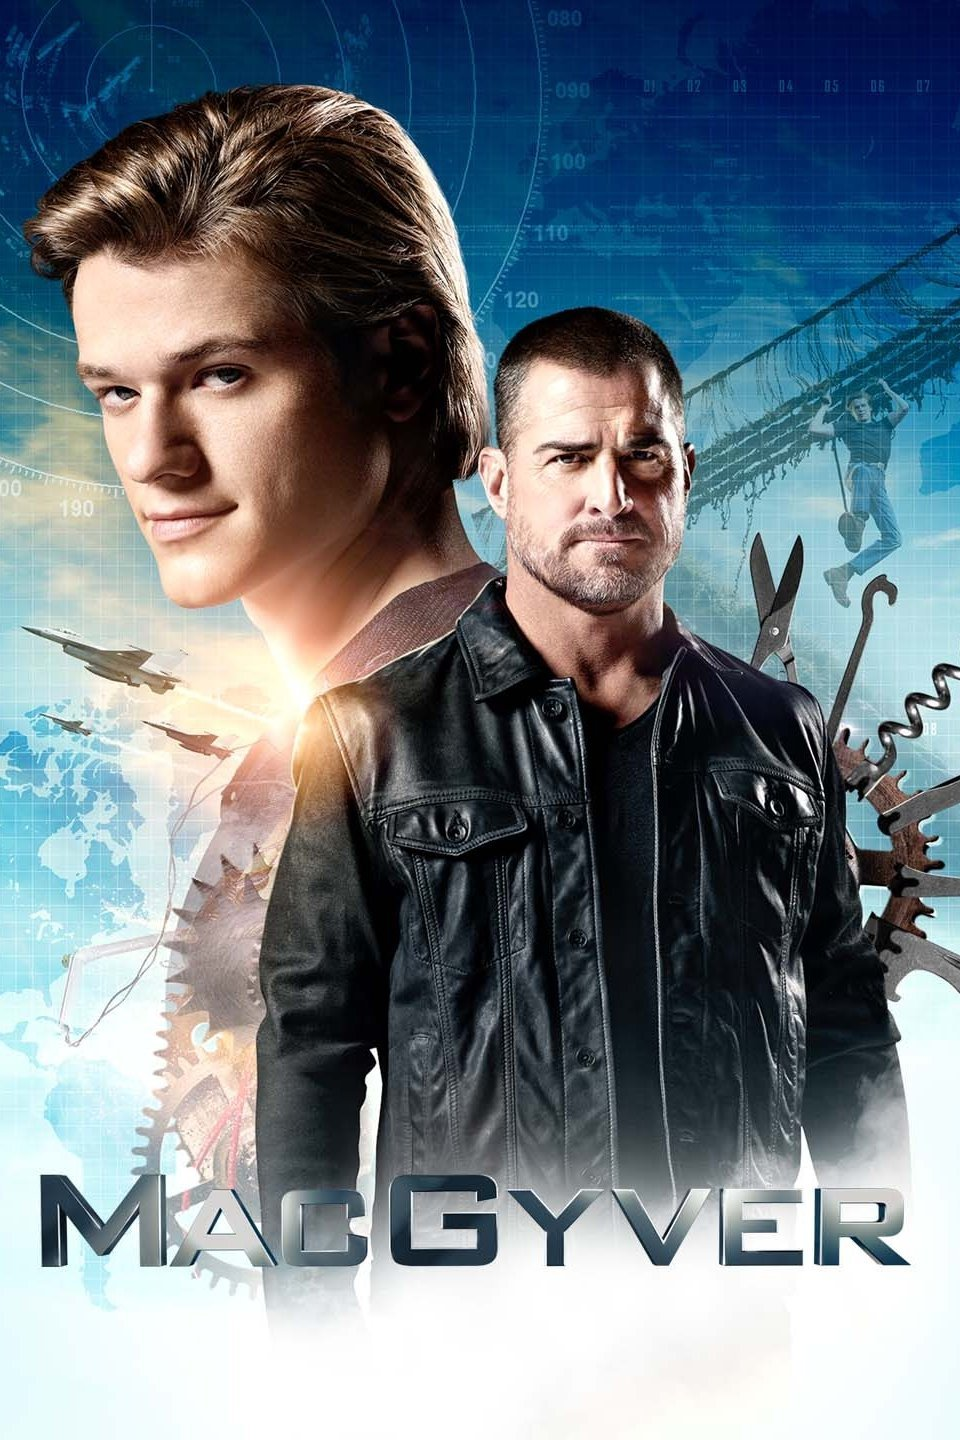 Macgyver Season 1 Episode 21 Download 480p WEB-DL 200MB